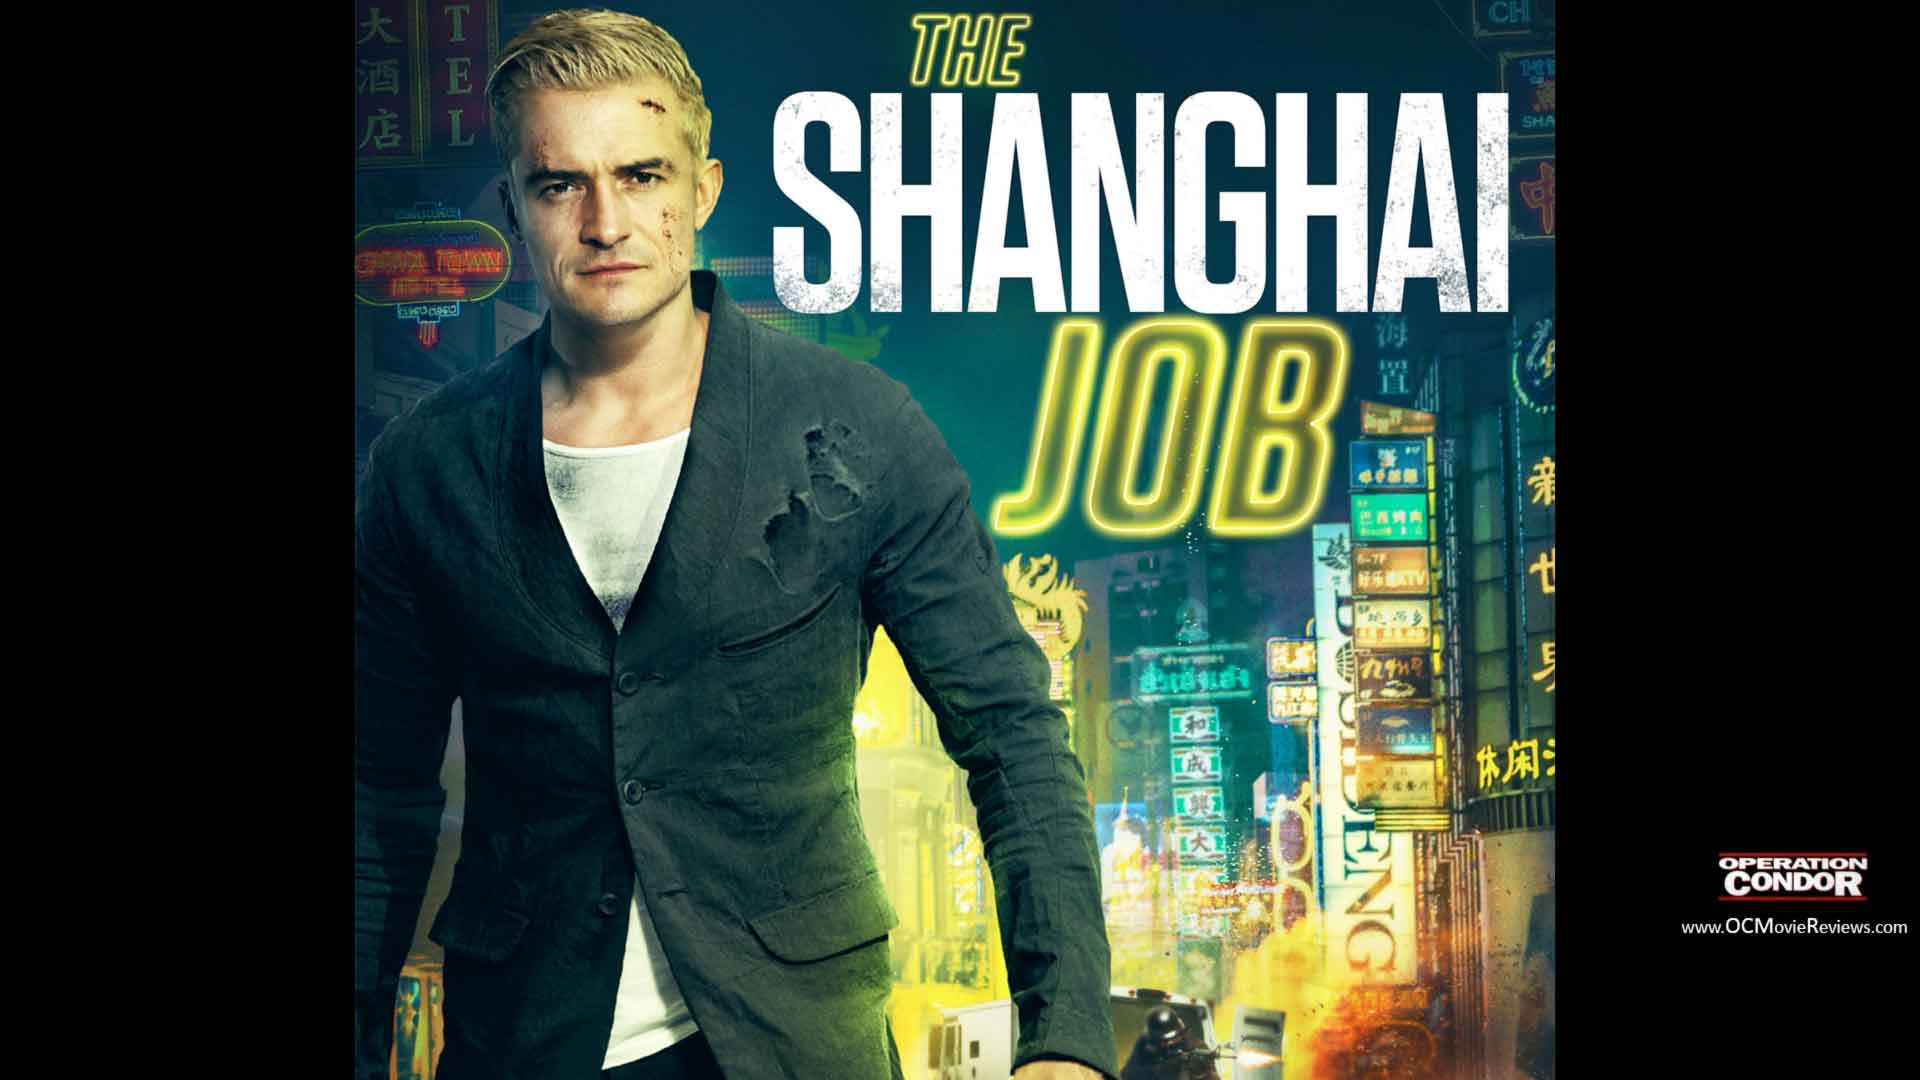 The Shanghai Job Trailer (AKA S.M.A.R.T. Chase) – Orlando Bloom Turns Action Hero - OC Movie Reviews - Movie Reviews, Movie News, Documentary Reviews, Short Films, Short Film Reviews, Trailers, Movie Trailers, Interviews, film reviews, film news, hollywood, indie films, documentaries